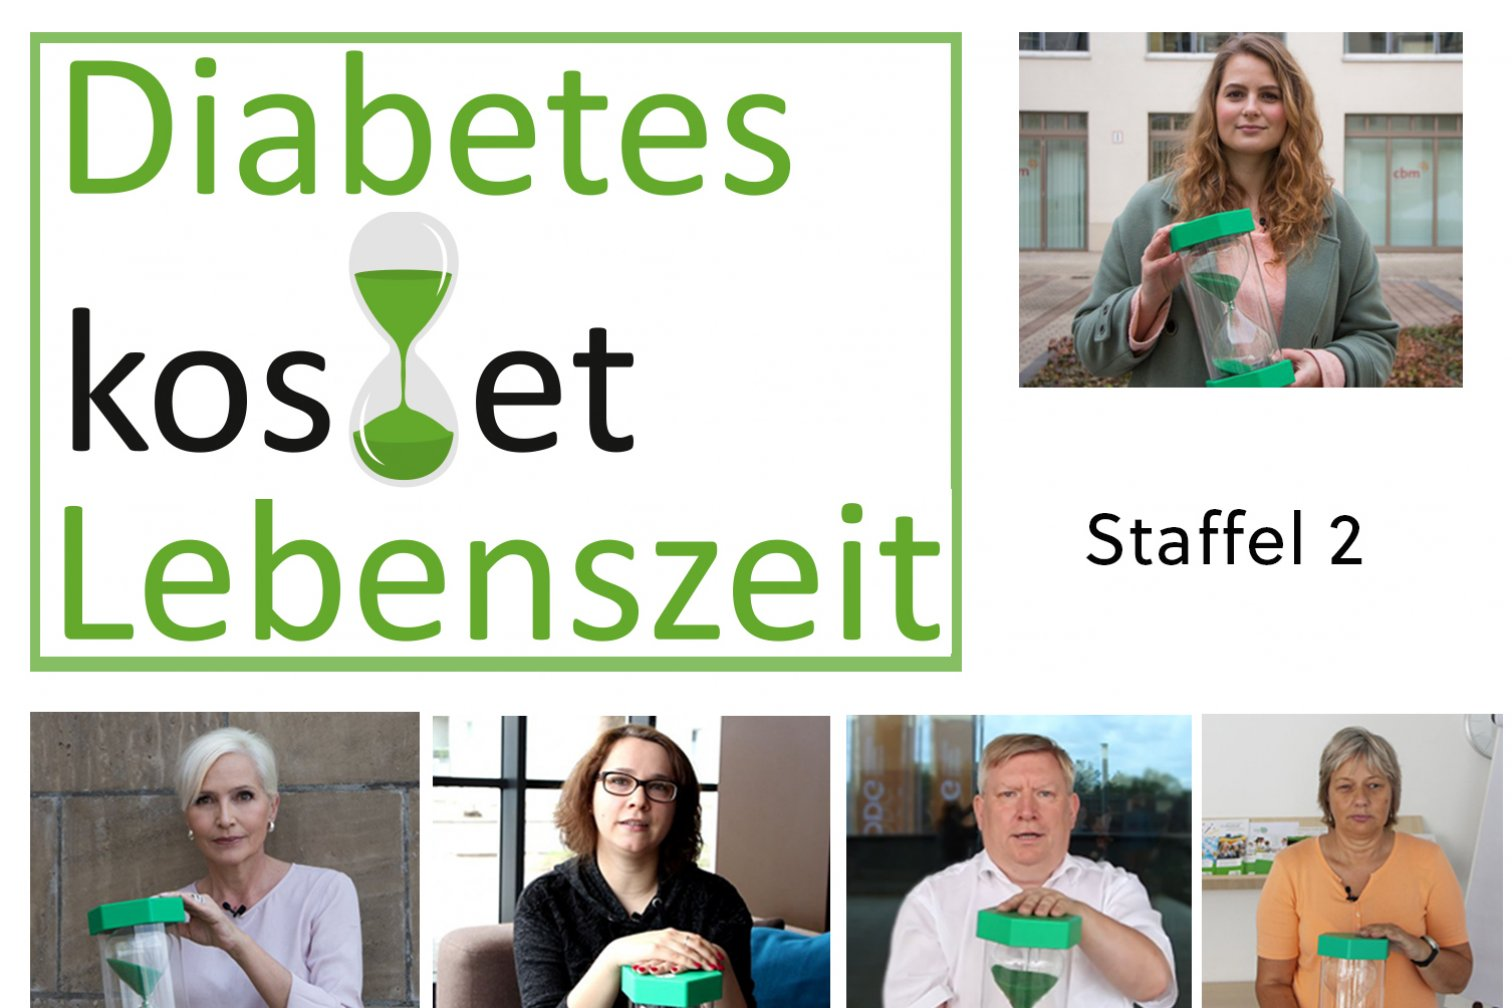 Diabetes kostet Lebenszeit Staffel 2 - Collage